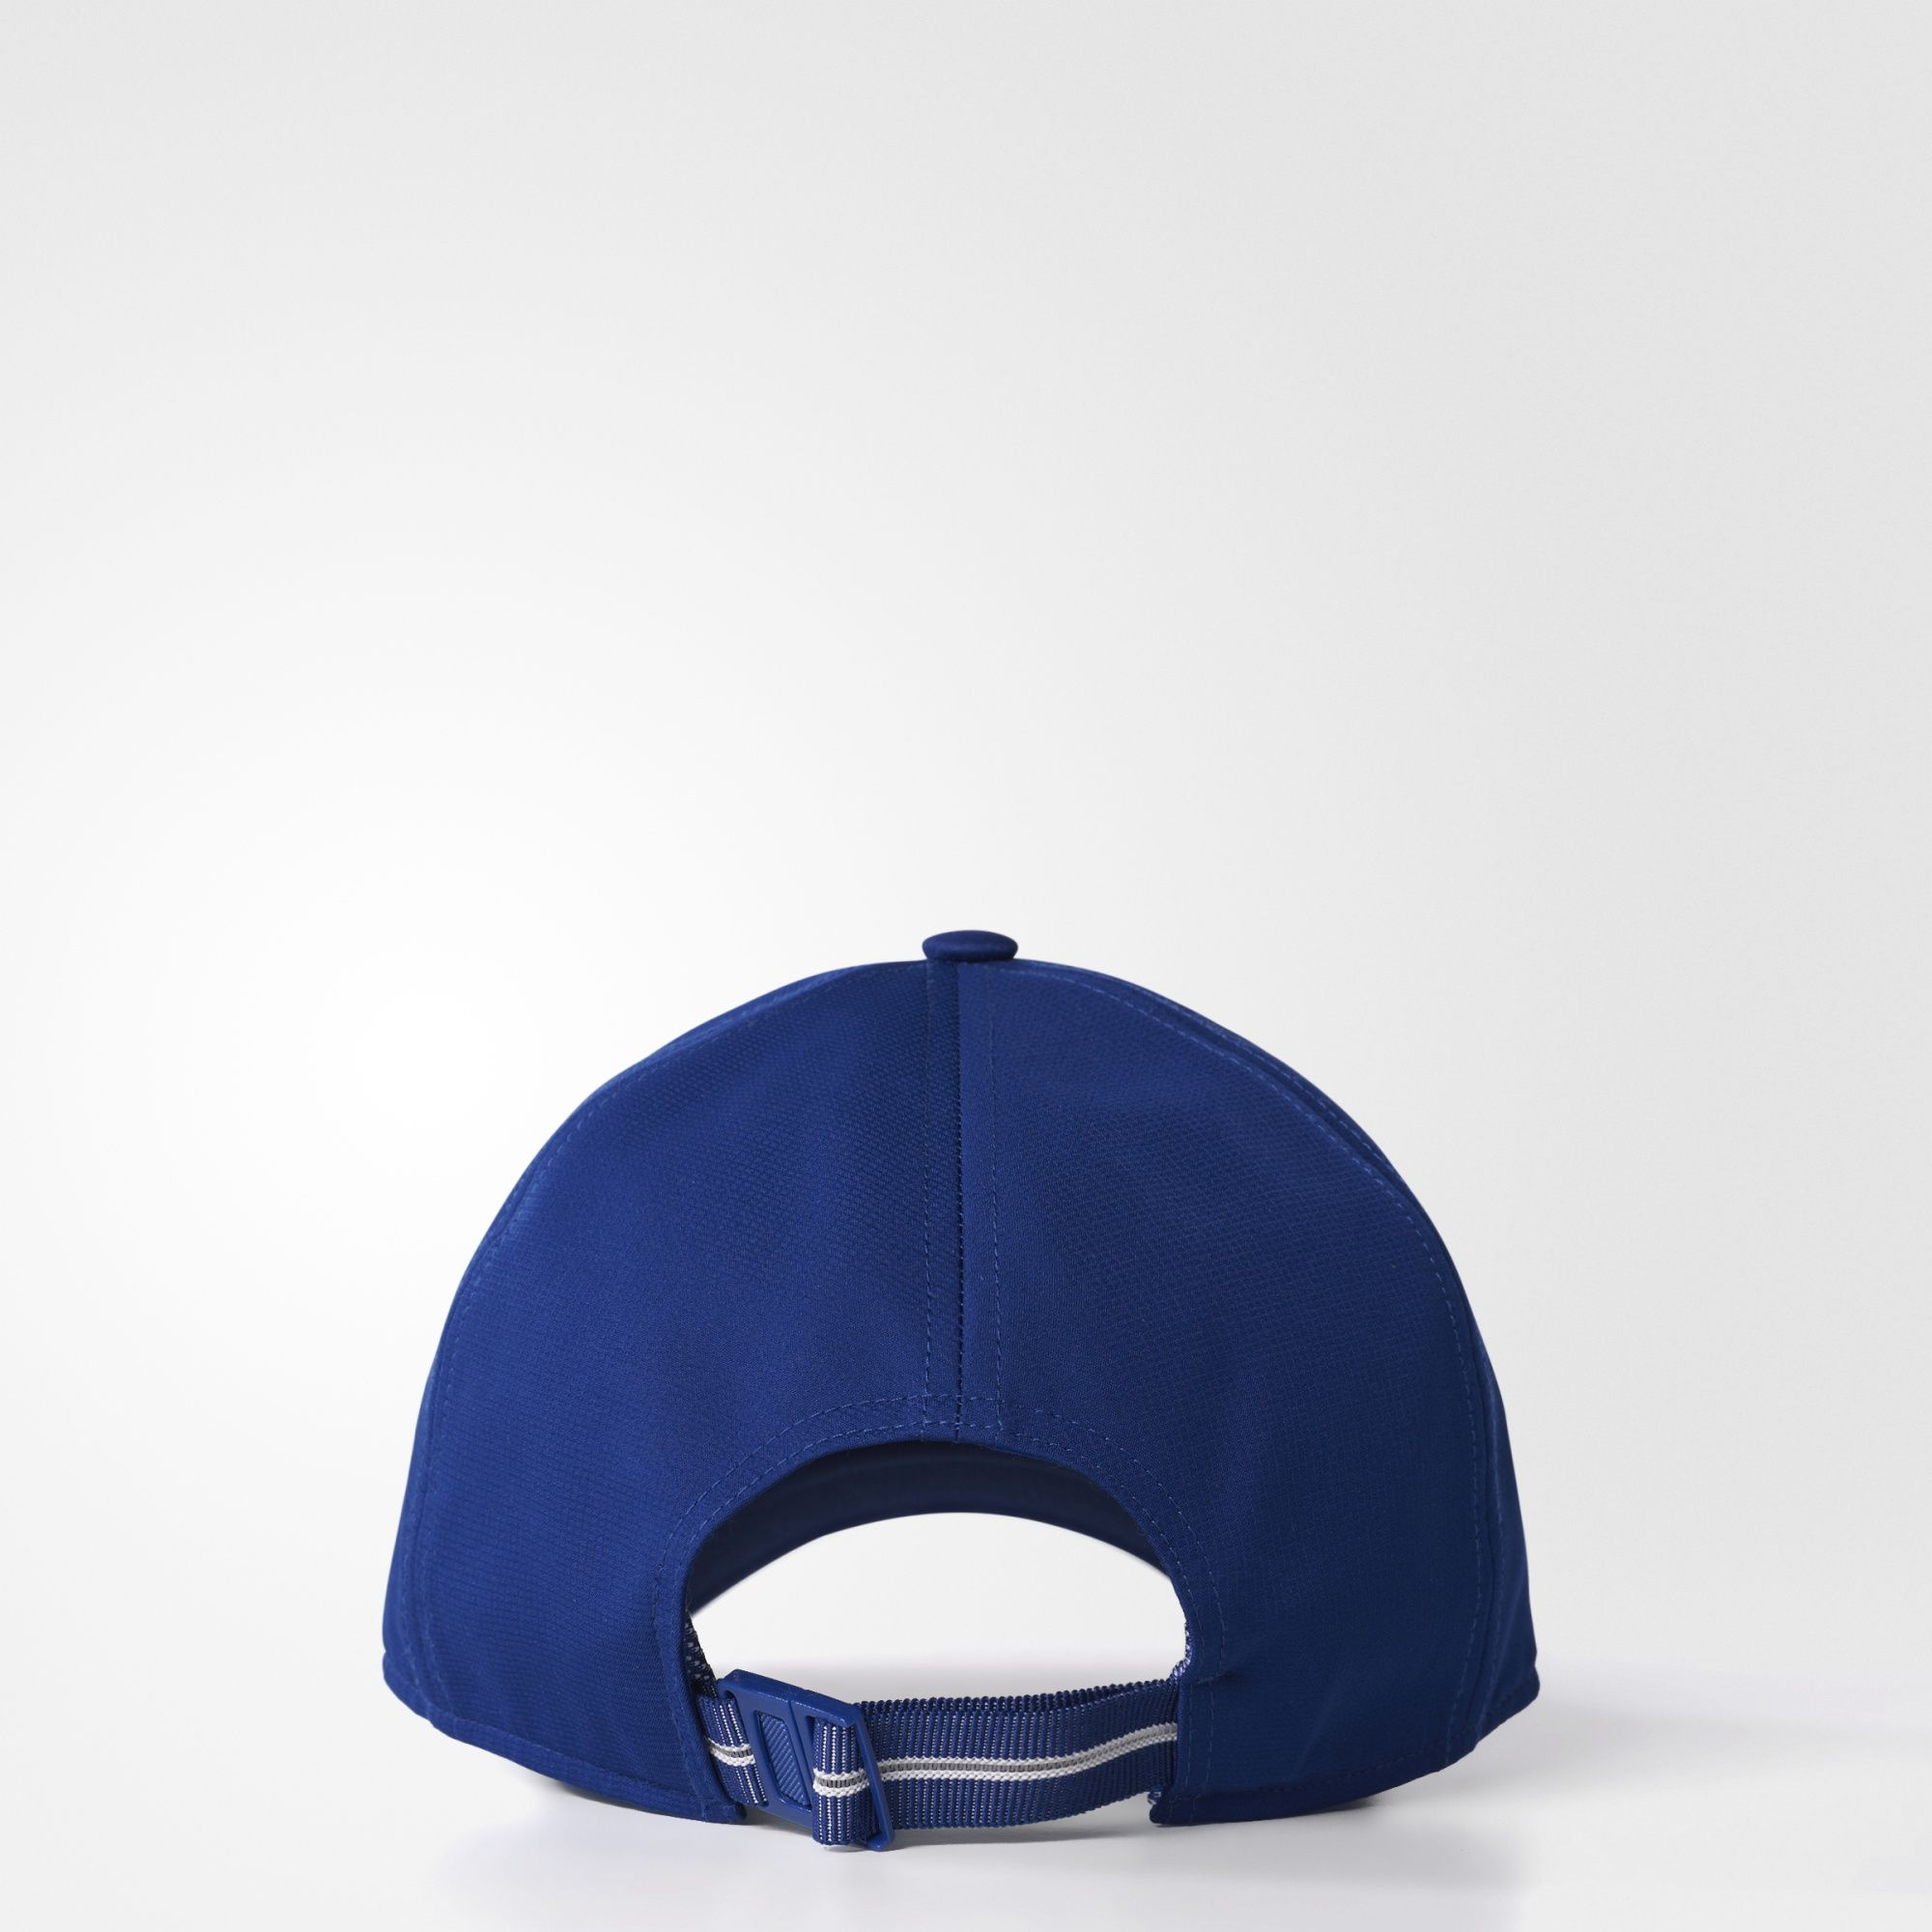 Mũ thể thao Adidas 5 Panel Classic Climalite Tennis BR6708